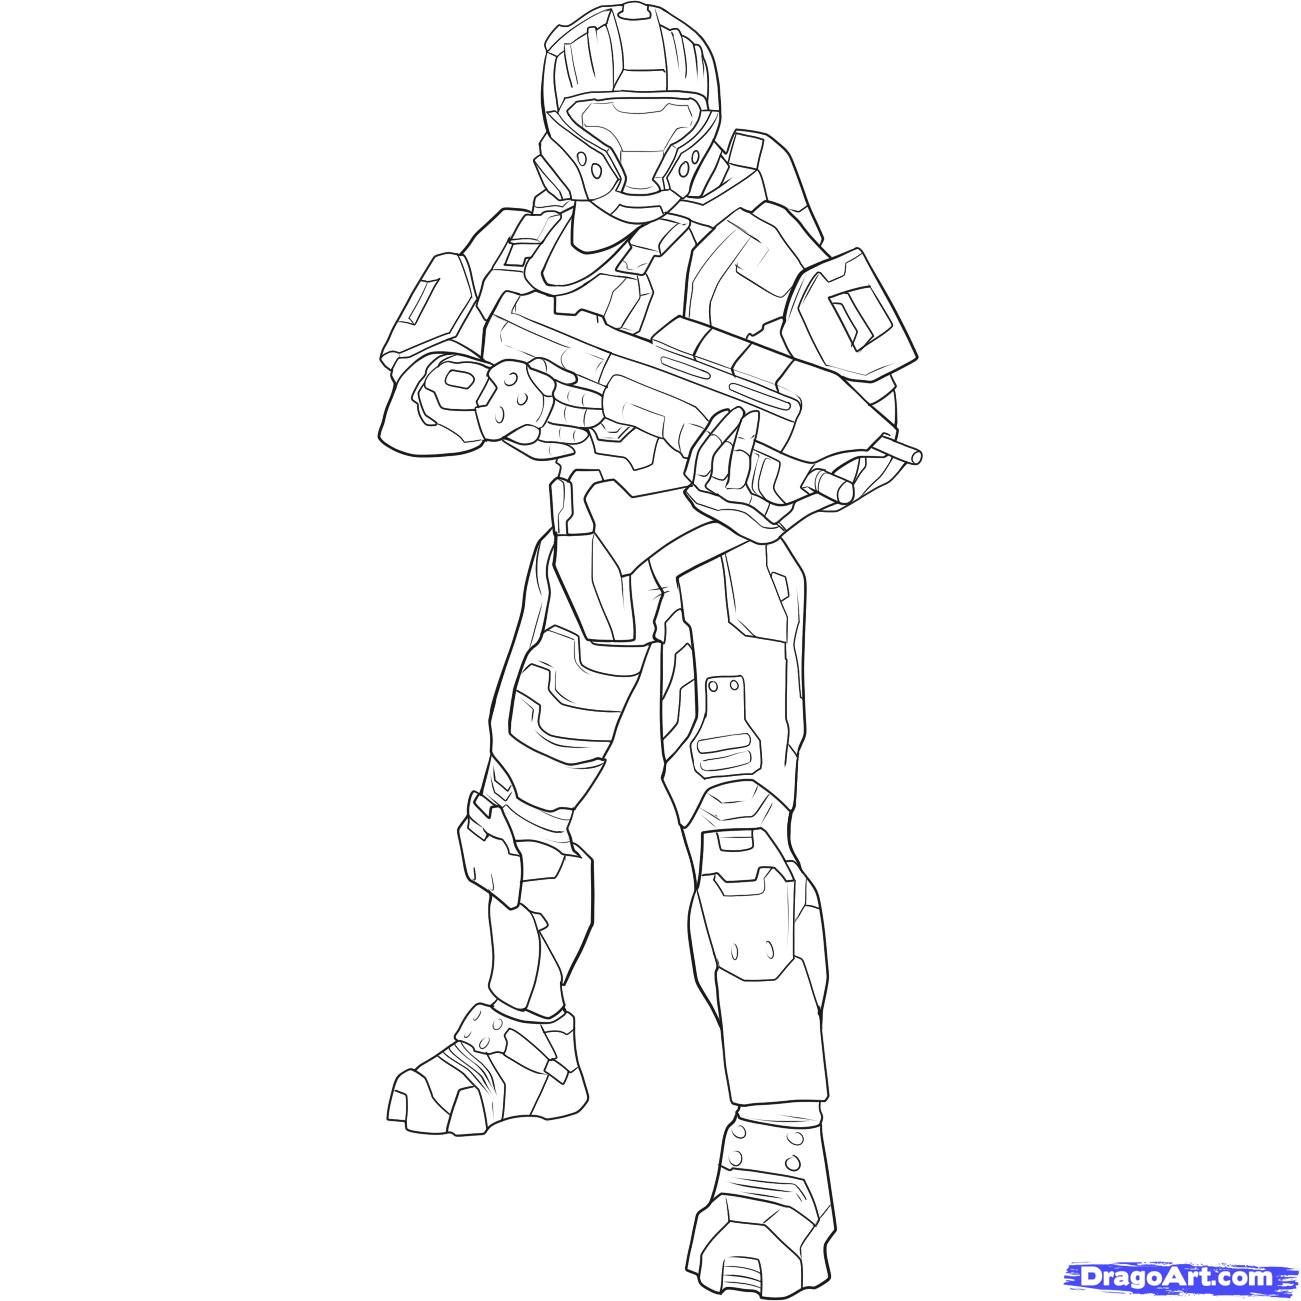 Drawn halo #10